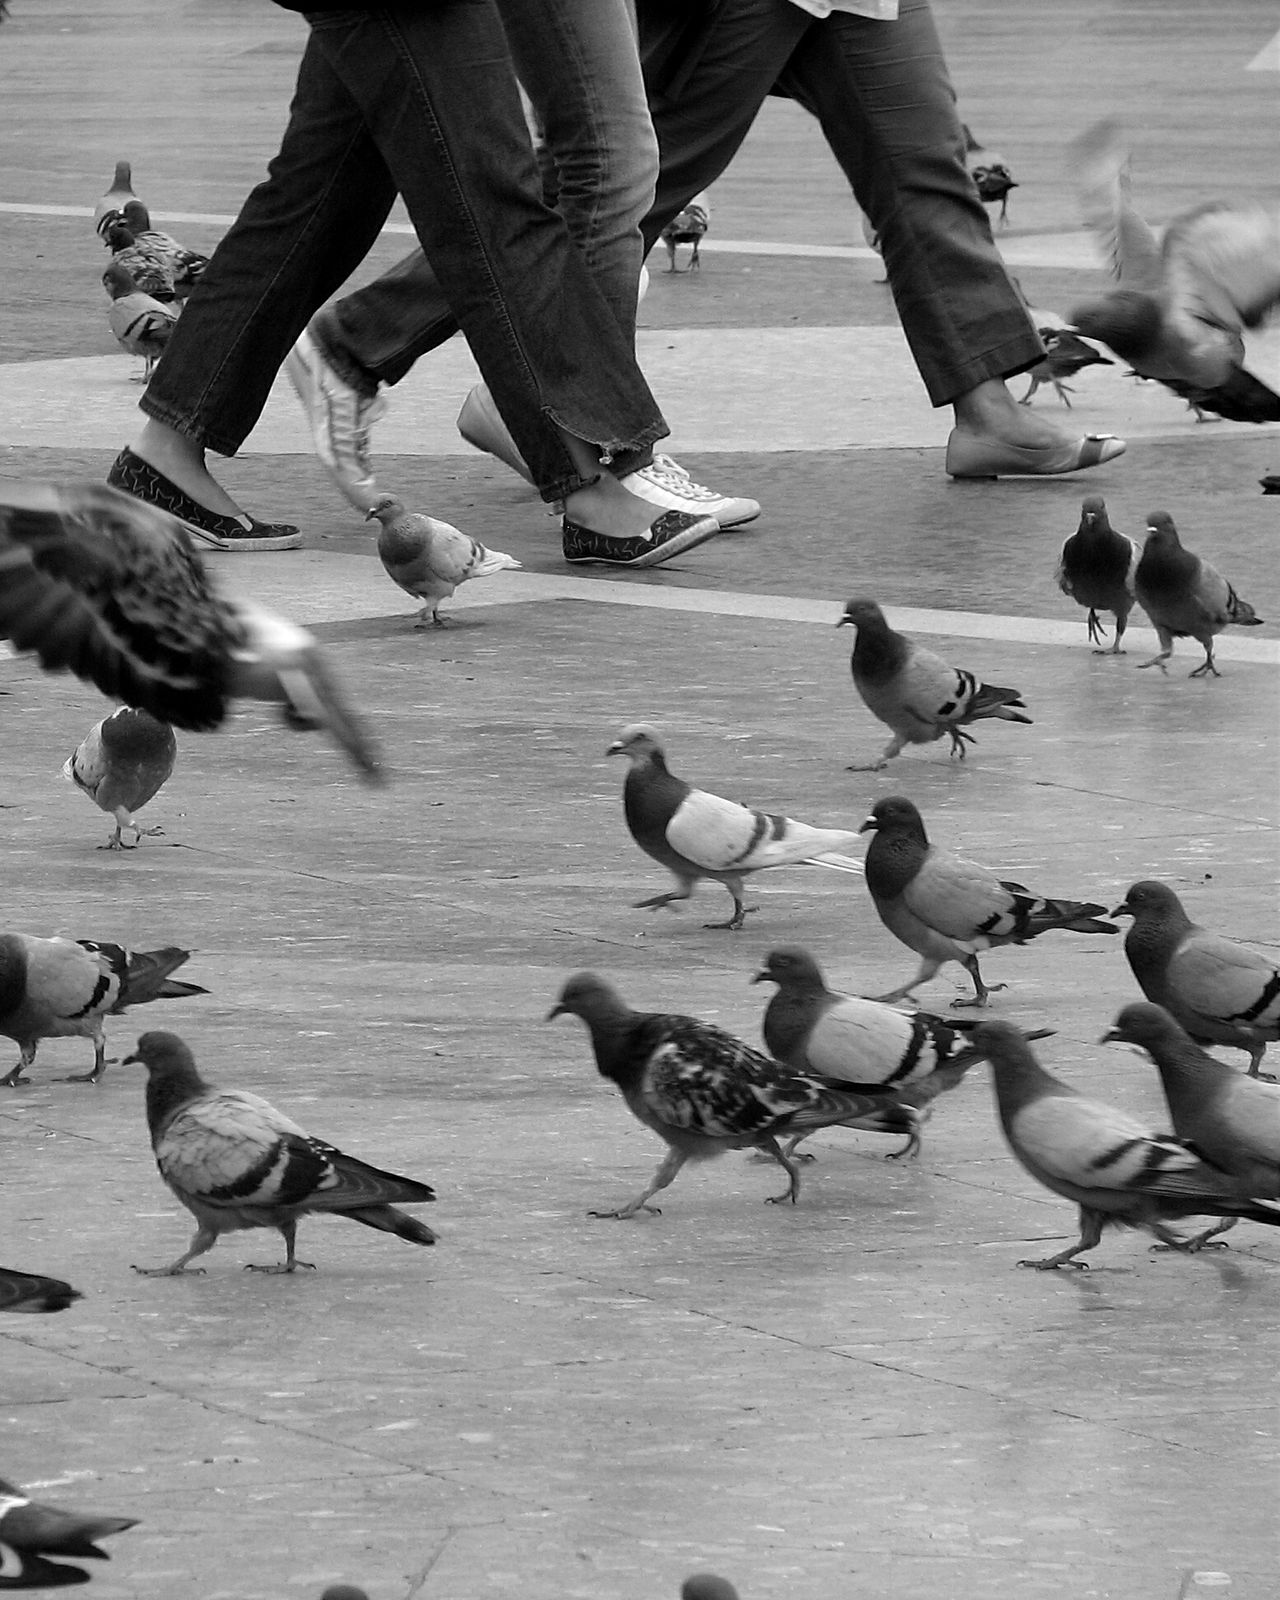 Pigeonslife Streetphotography Pigeons Eyeemphotography From My Point Of View Pigeons Everywhere Black And White Street Life Black And White Collection  Blackandwhite Photography Street Photography Eyemphotography EyeEm Gallery Birds_collection Birds Photography Check This Out Eye4photography  Animal Photography Walking Around Animals Citysquare City Life Walking Around The City  Taking Photos